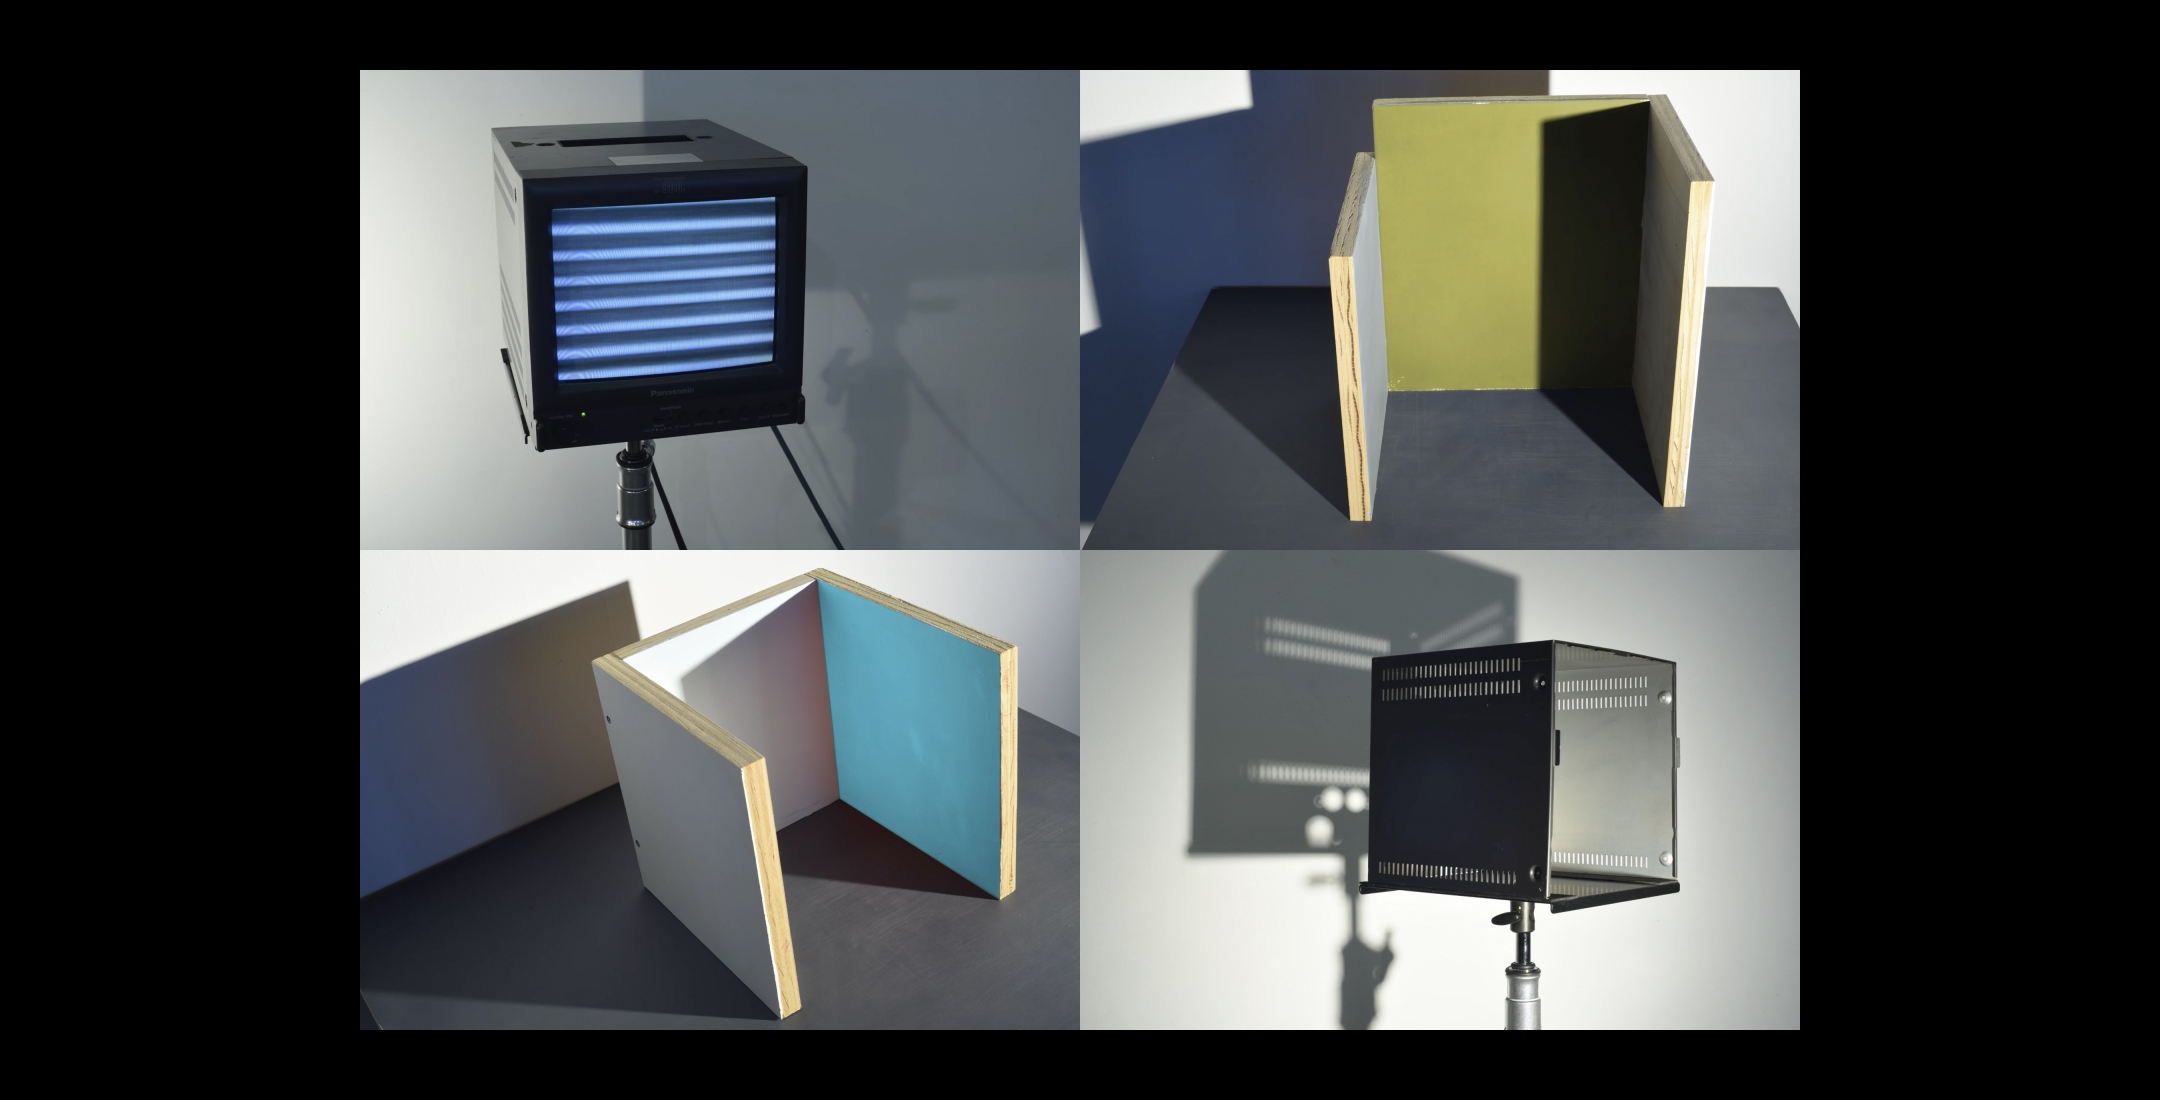 James Woodfill - Code Practice, digital animations of sculptural Code Practice work such as painted structures on tripod supports